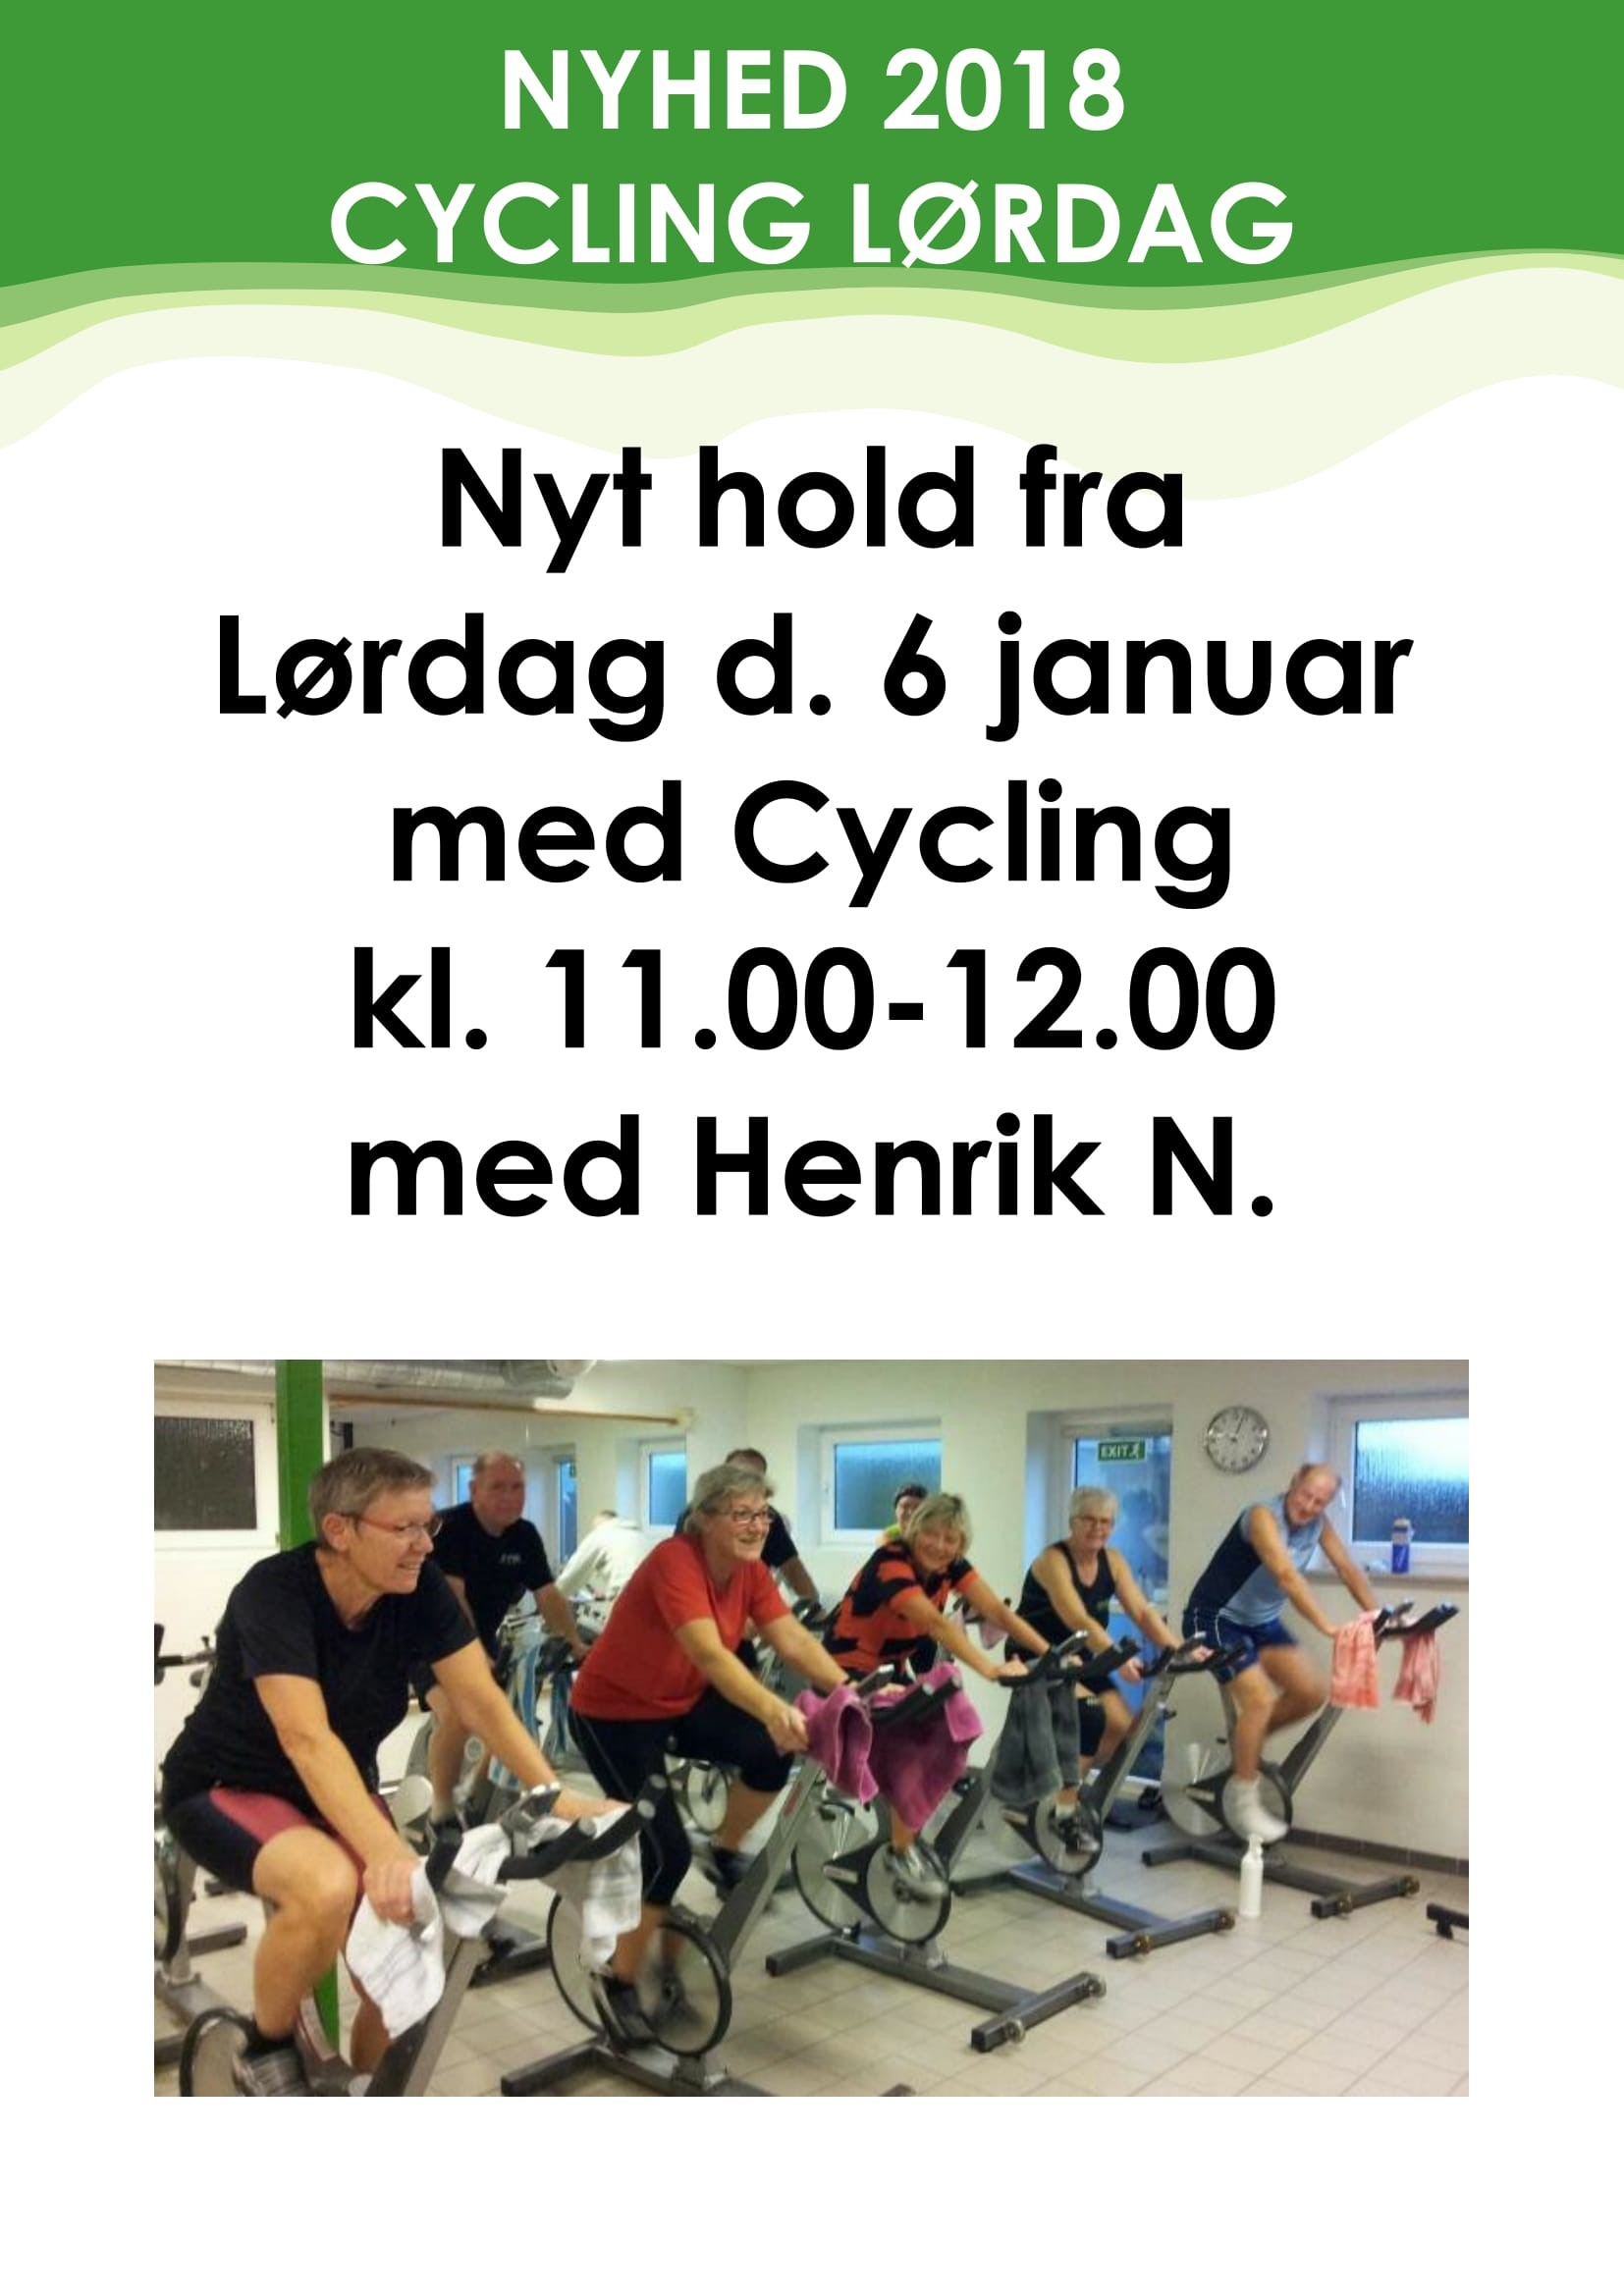 Cycling Lørdag start d. 6 januar